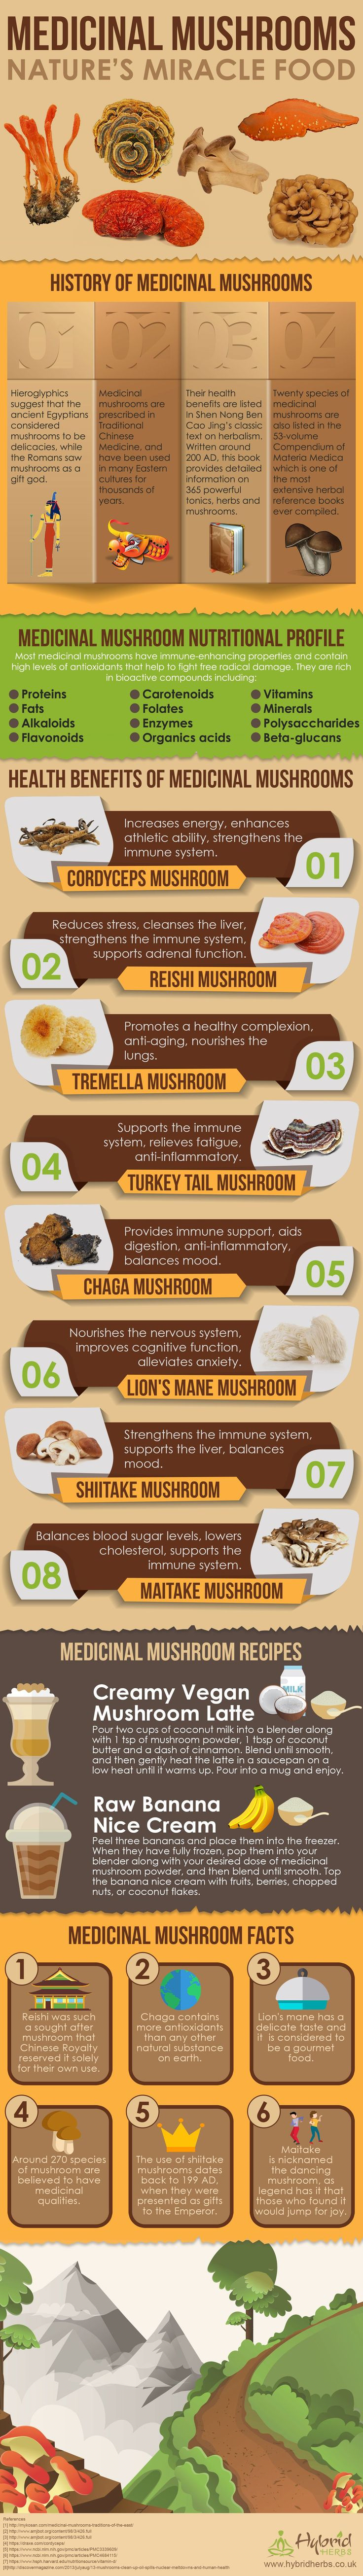 Medicinal Mushroom Health Benefits Infographic: Nature's Miracle Foods